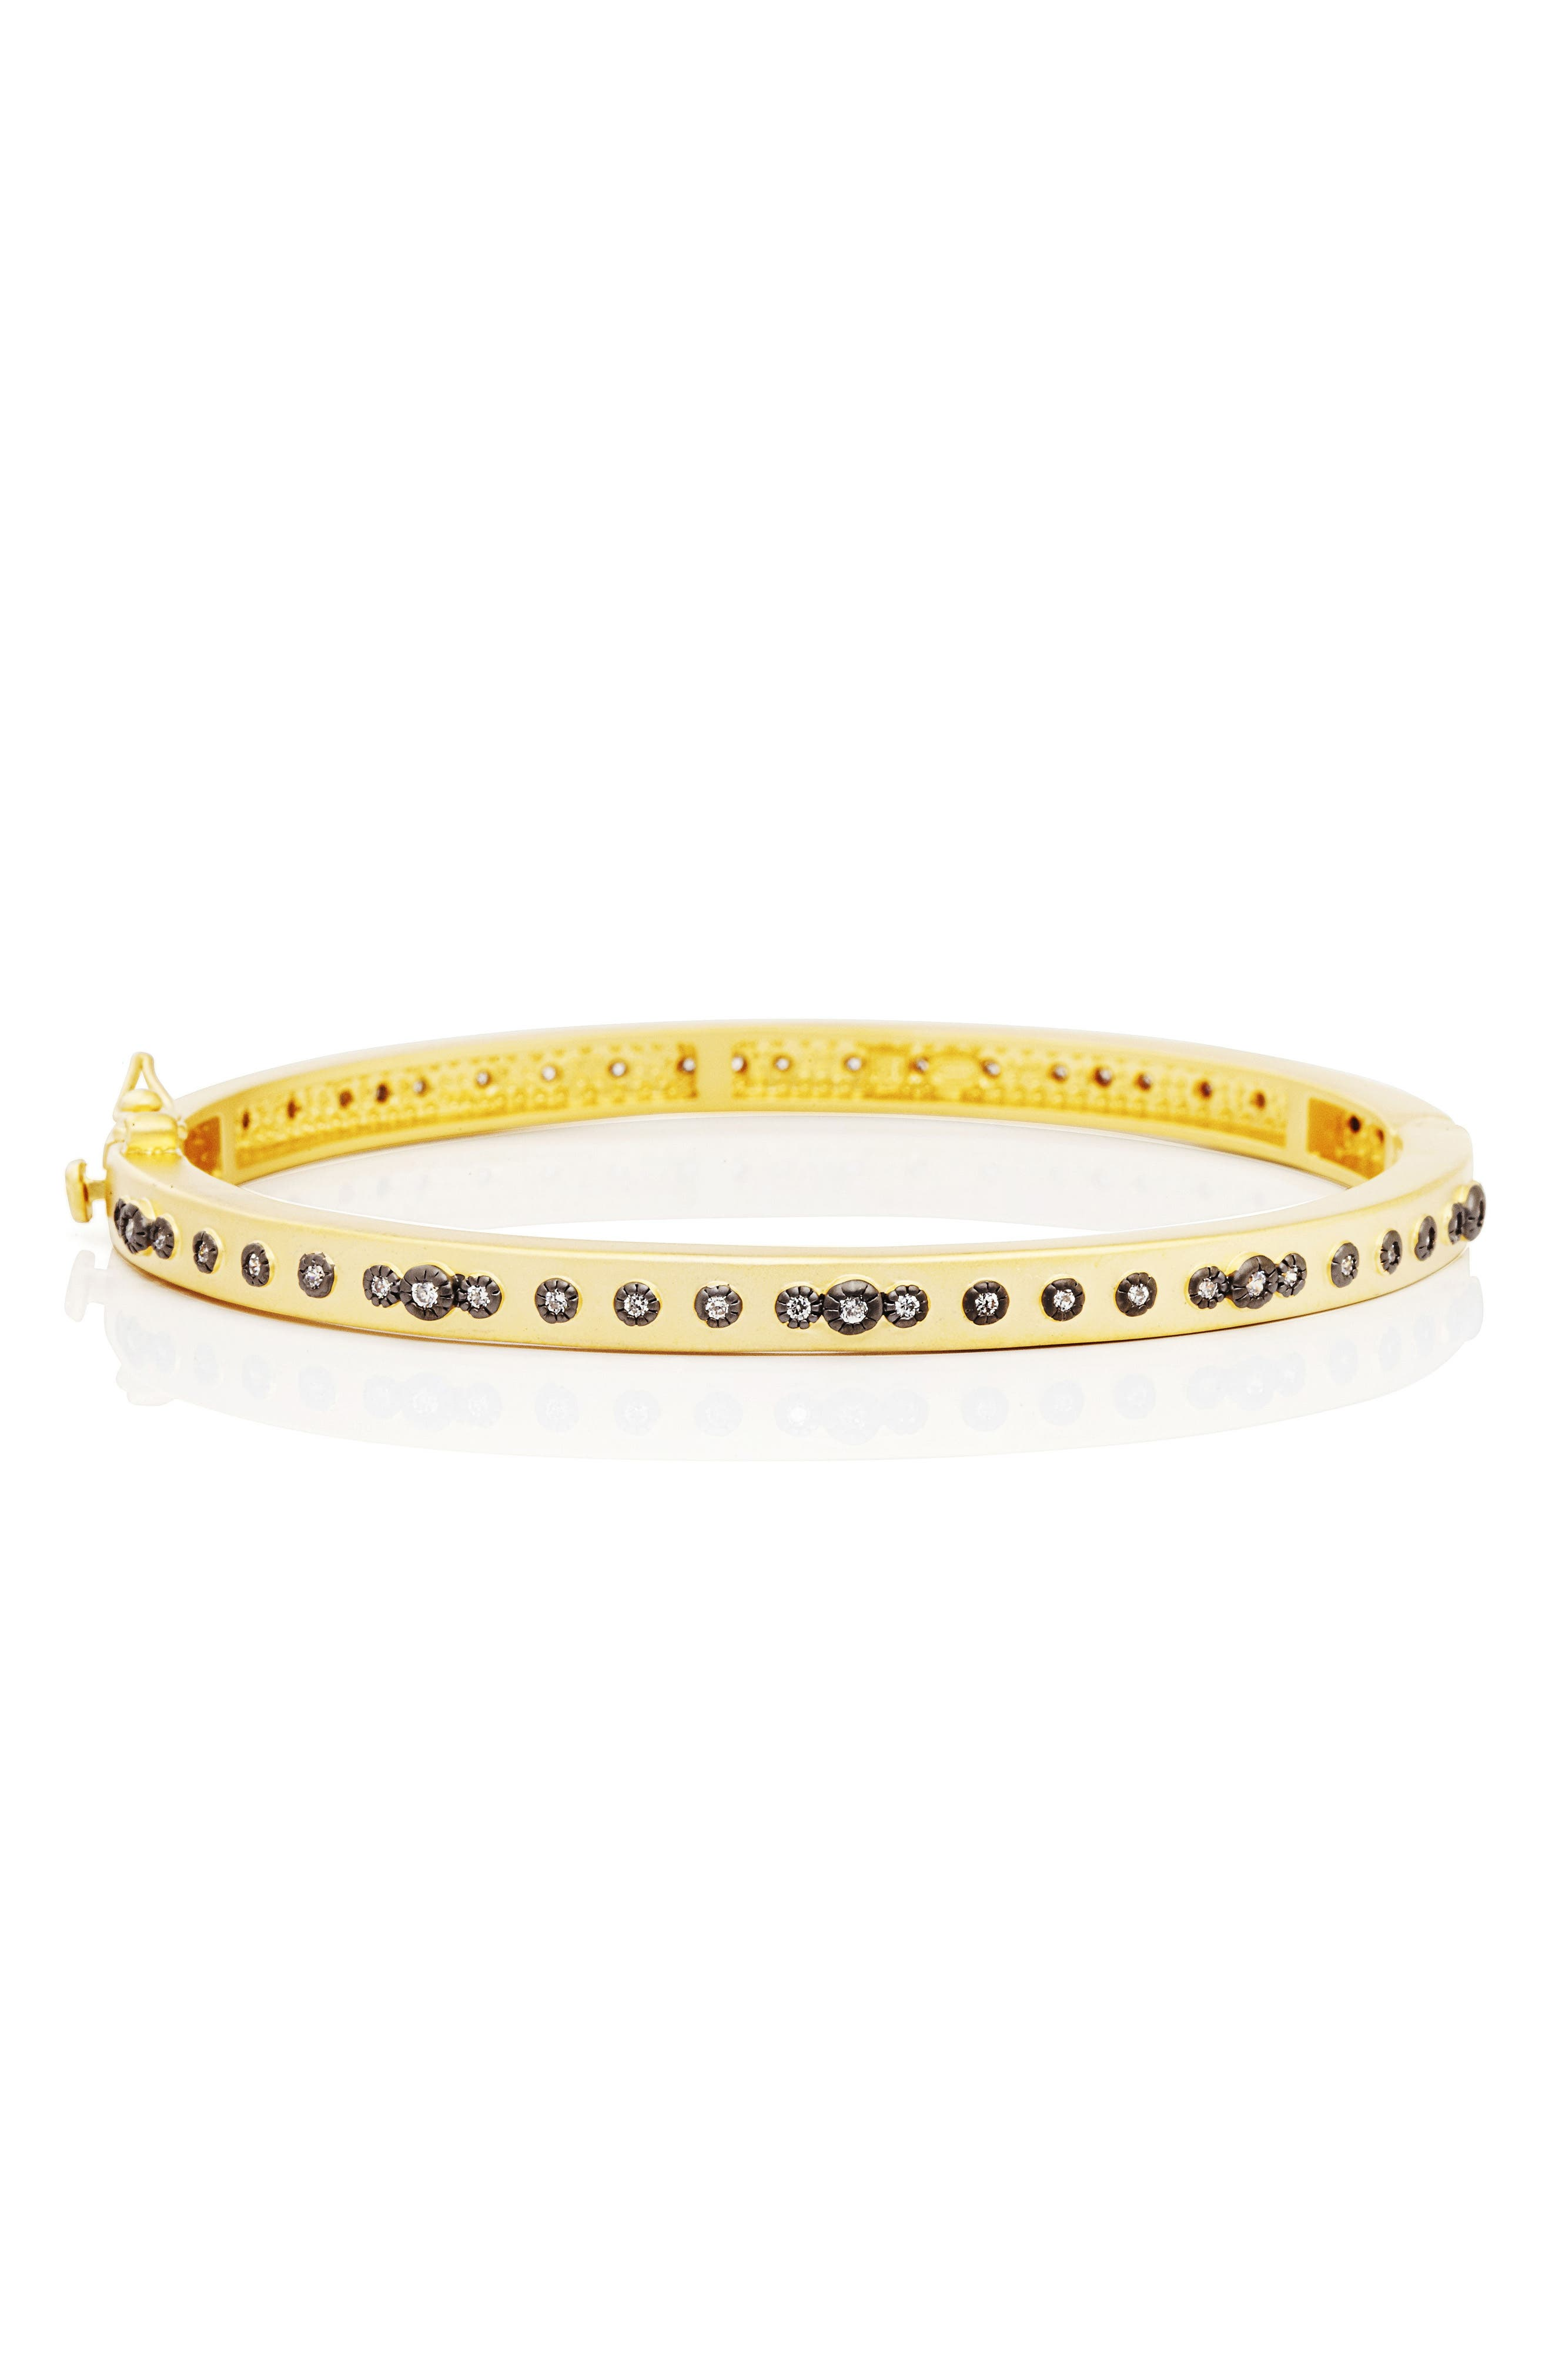 Signature Mini Stud Eternity Bracelet,                         Main,                         color, Gold/ Black